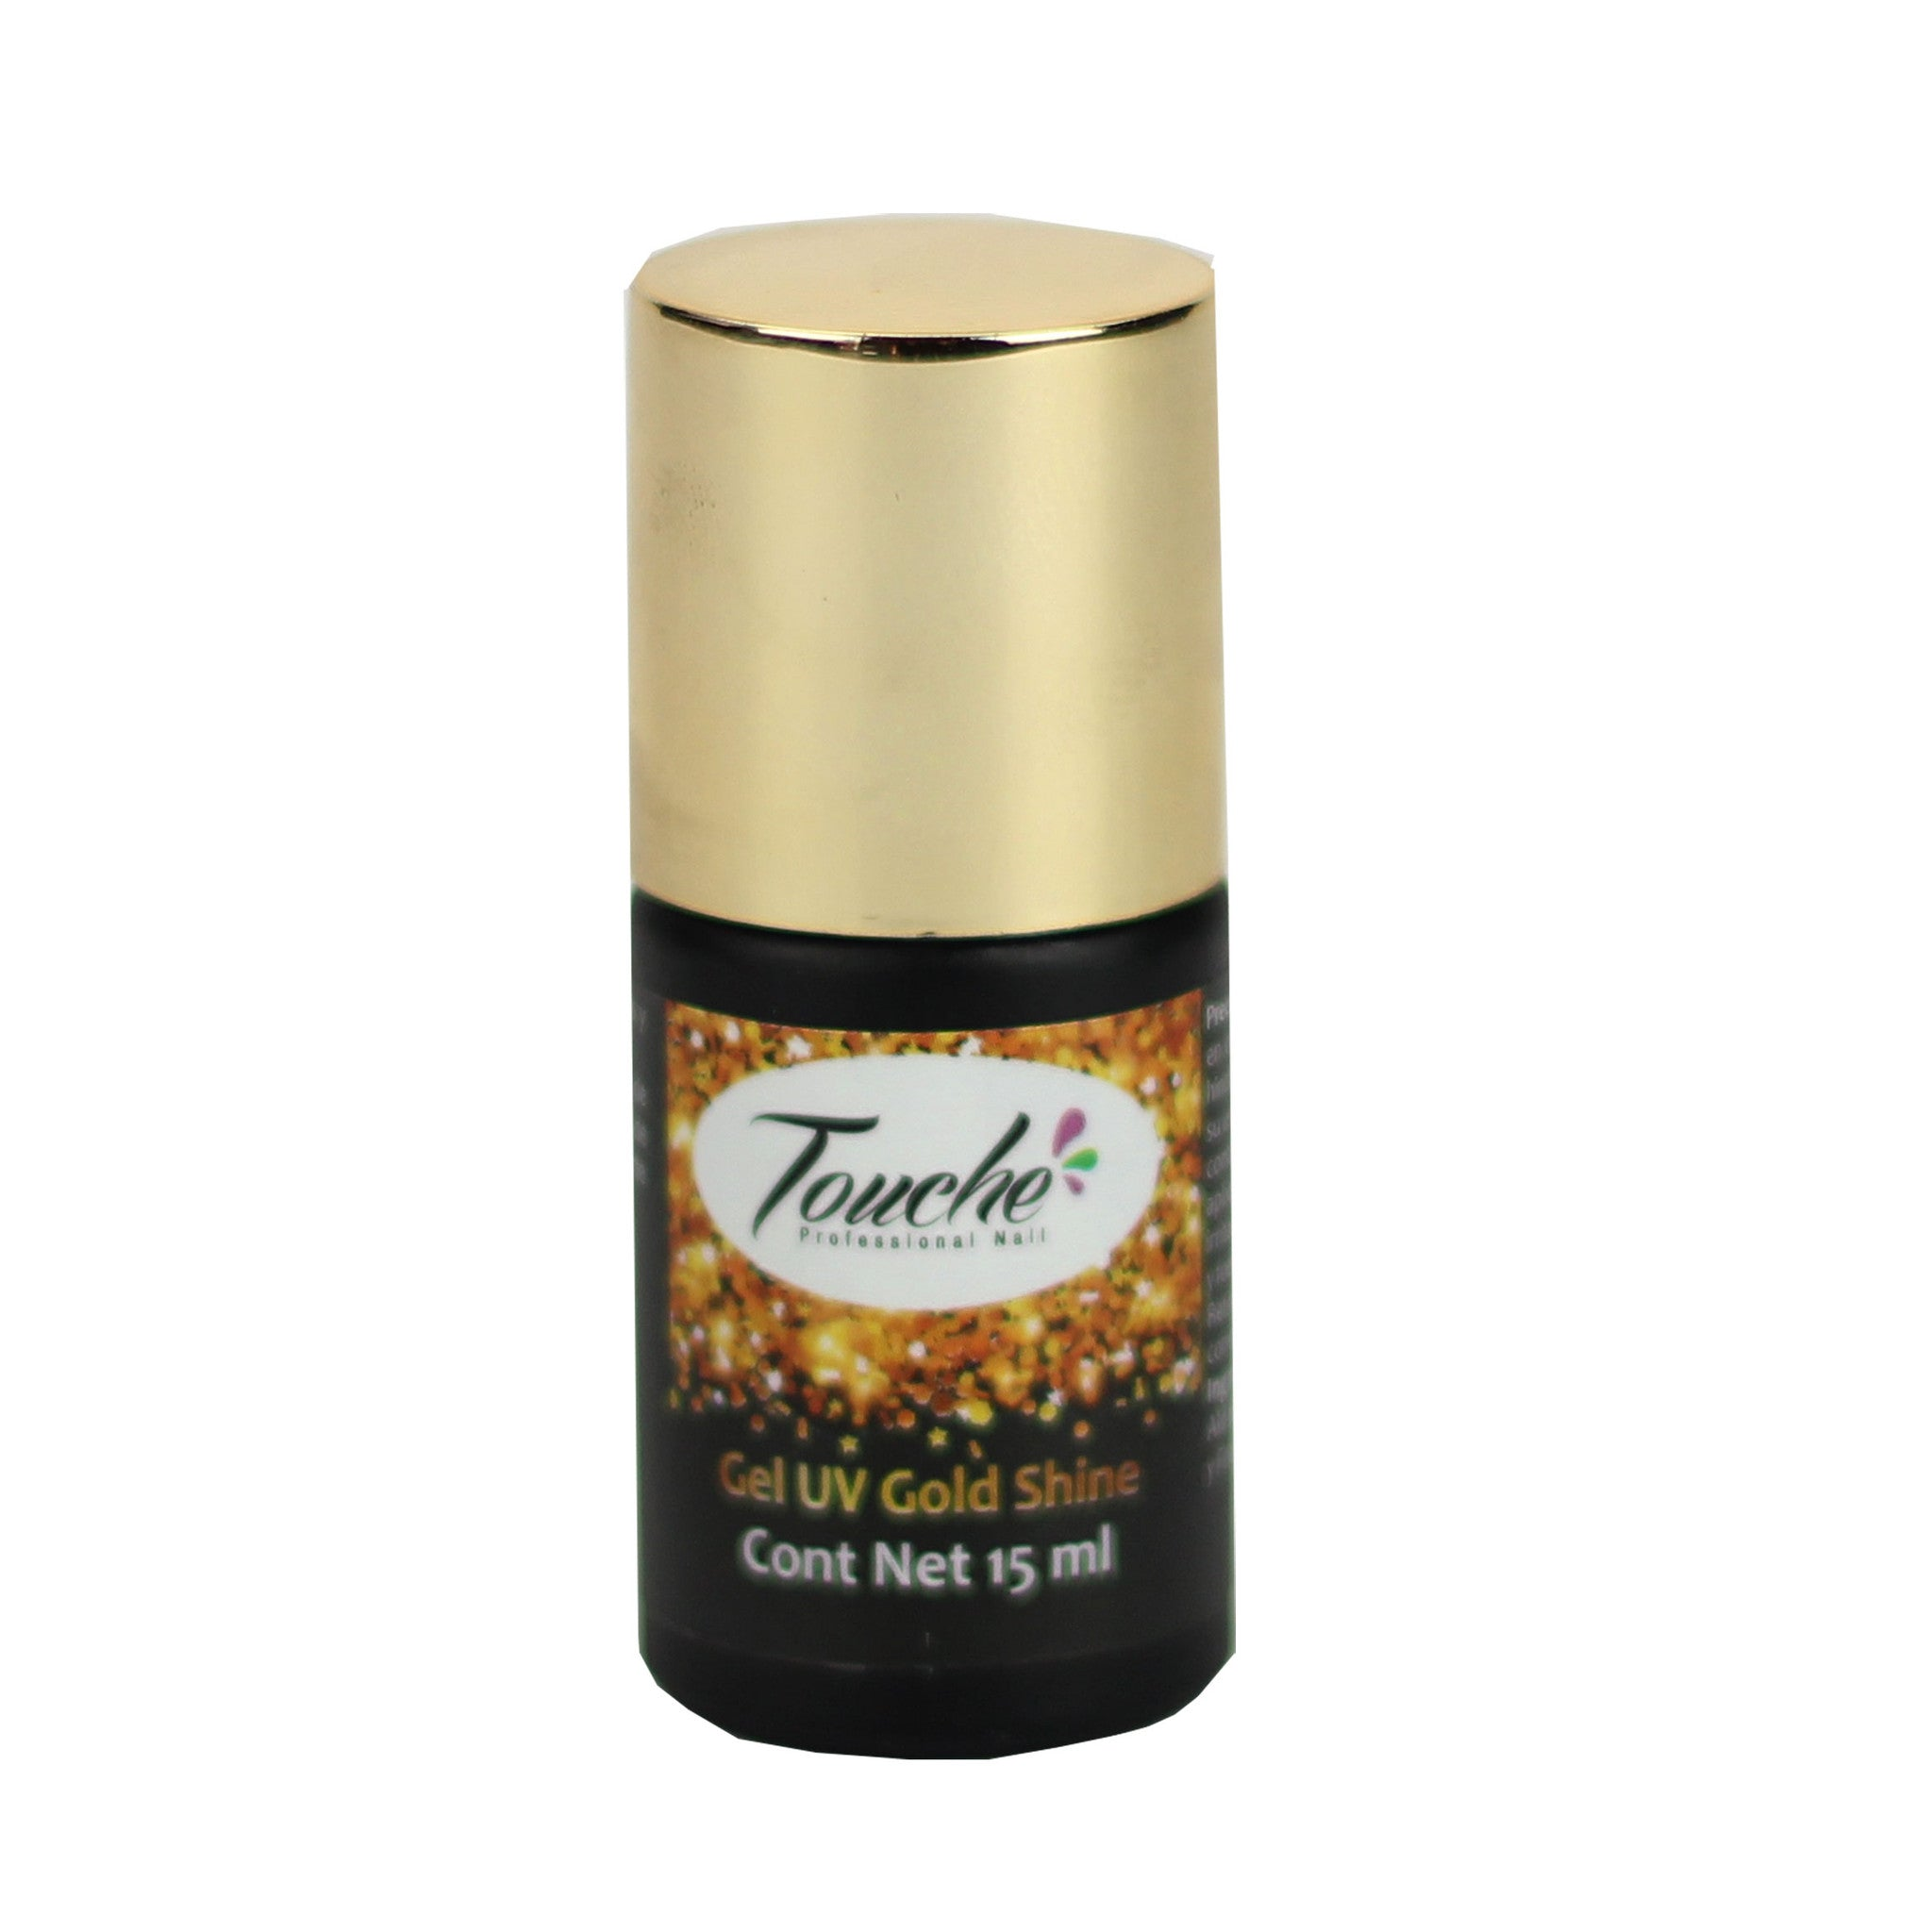 TOUCHE GEL UV GOLD SHINE 15 ML